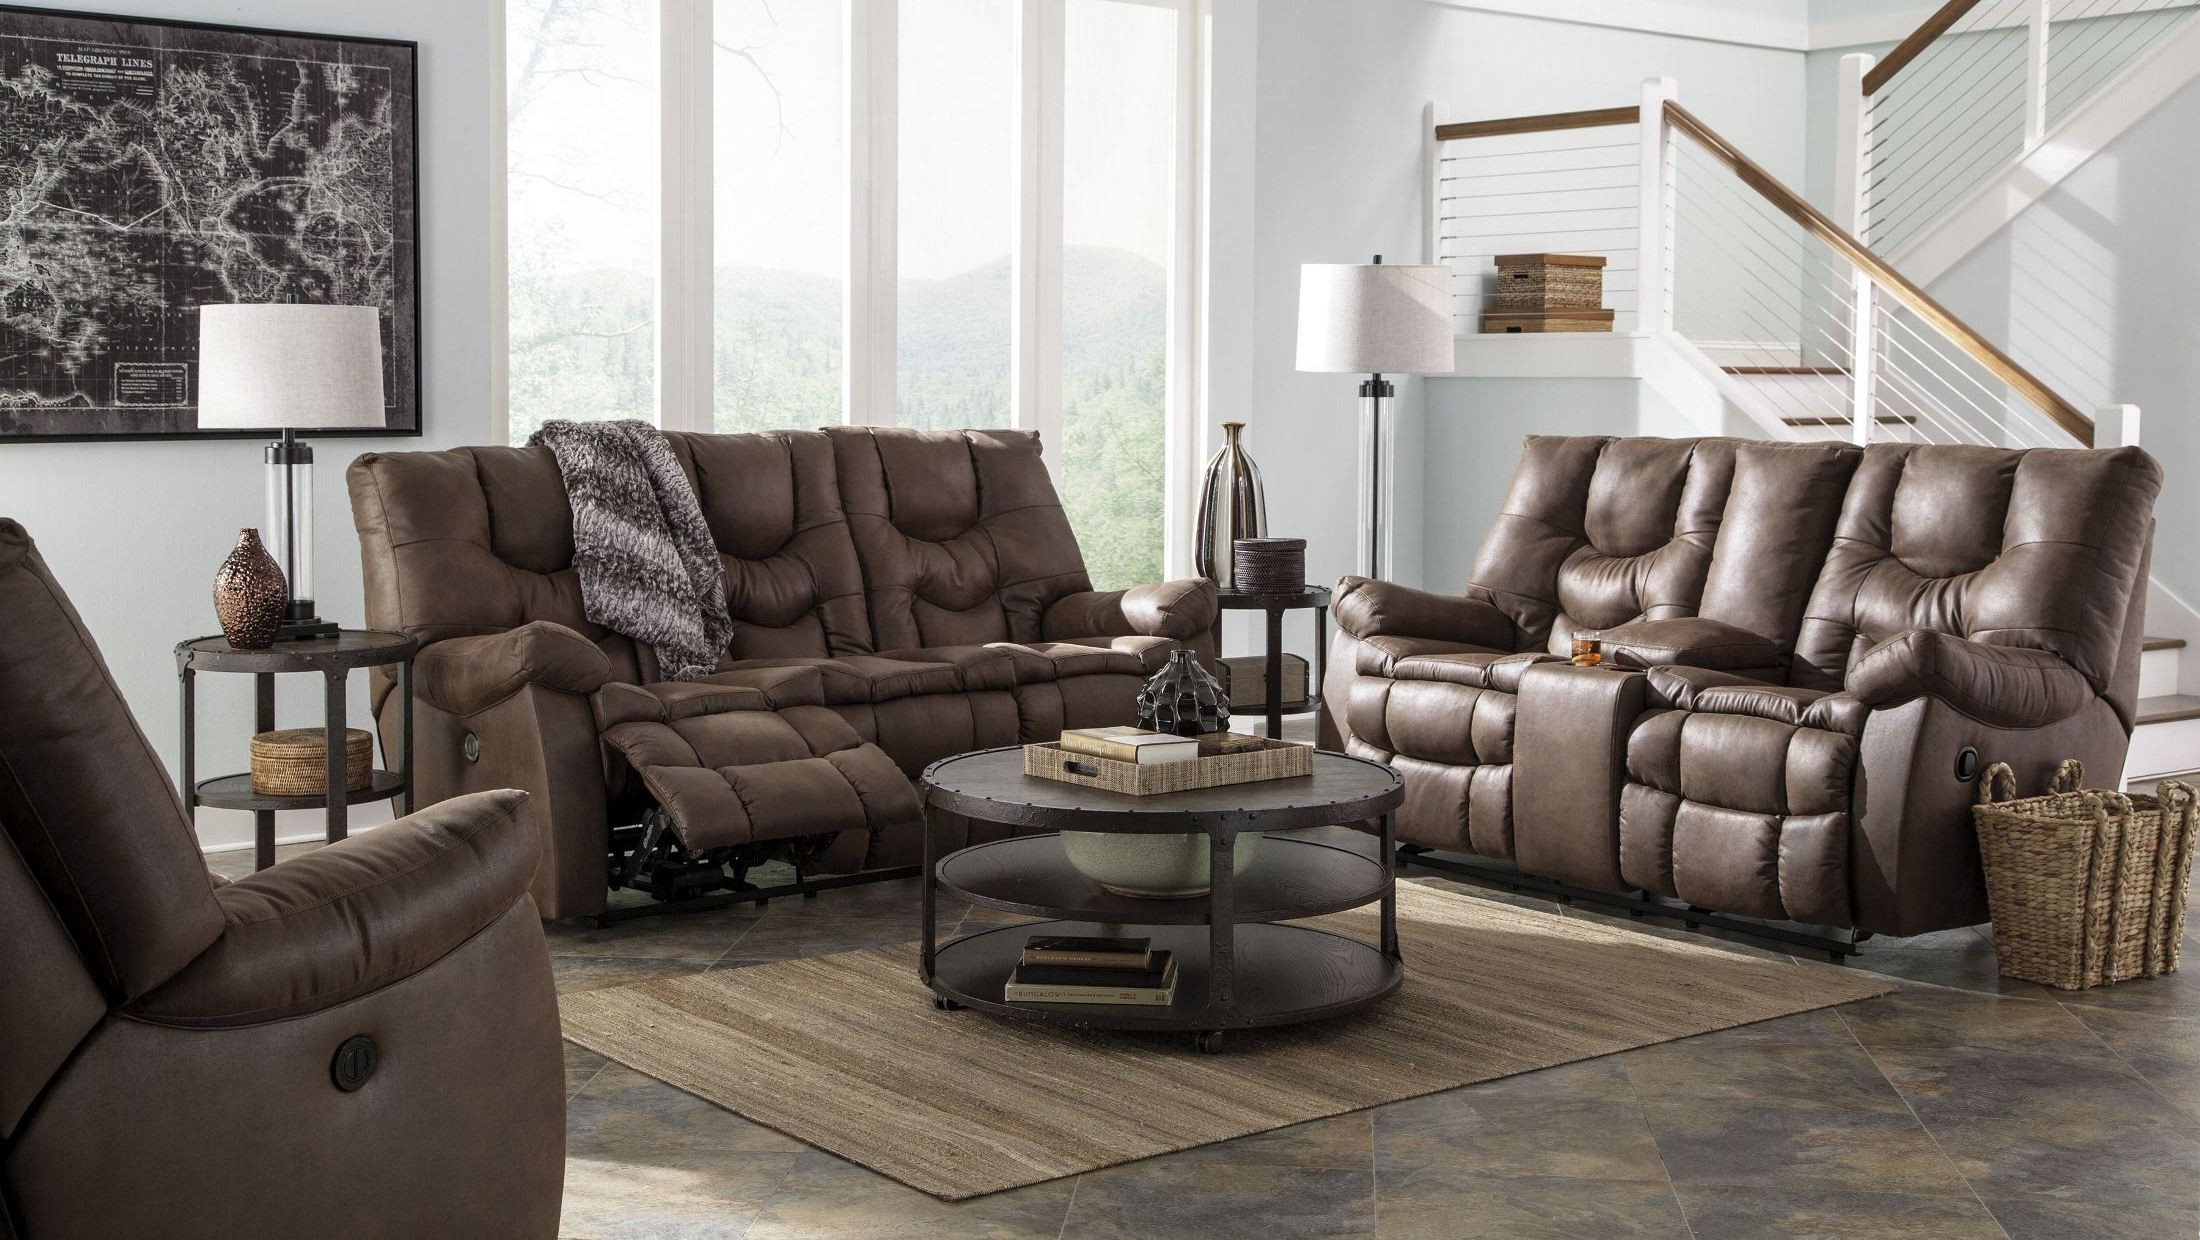 Burgett espresso reclining power reclining living room set for Cheap reclining living room sets